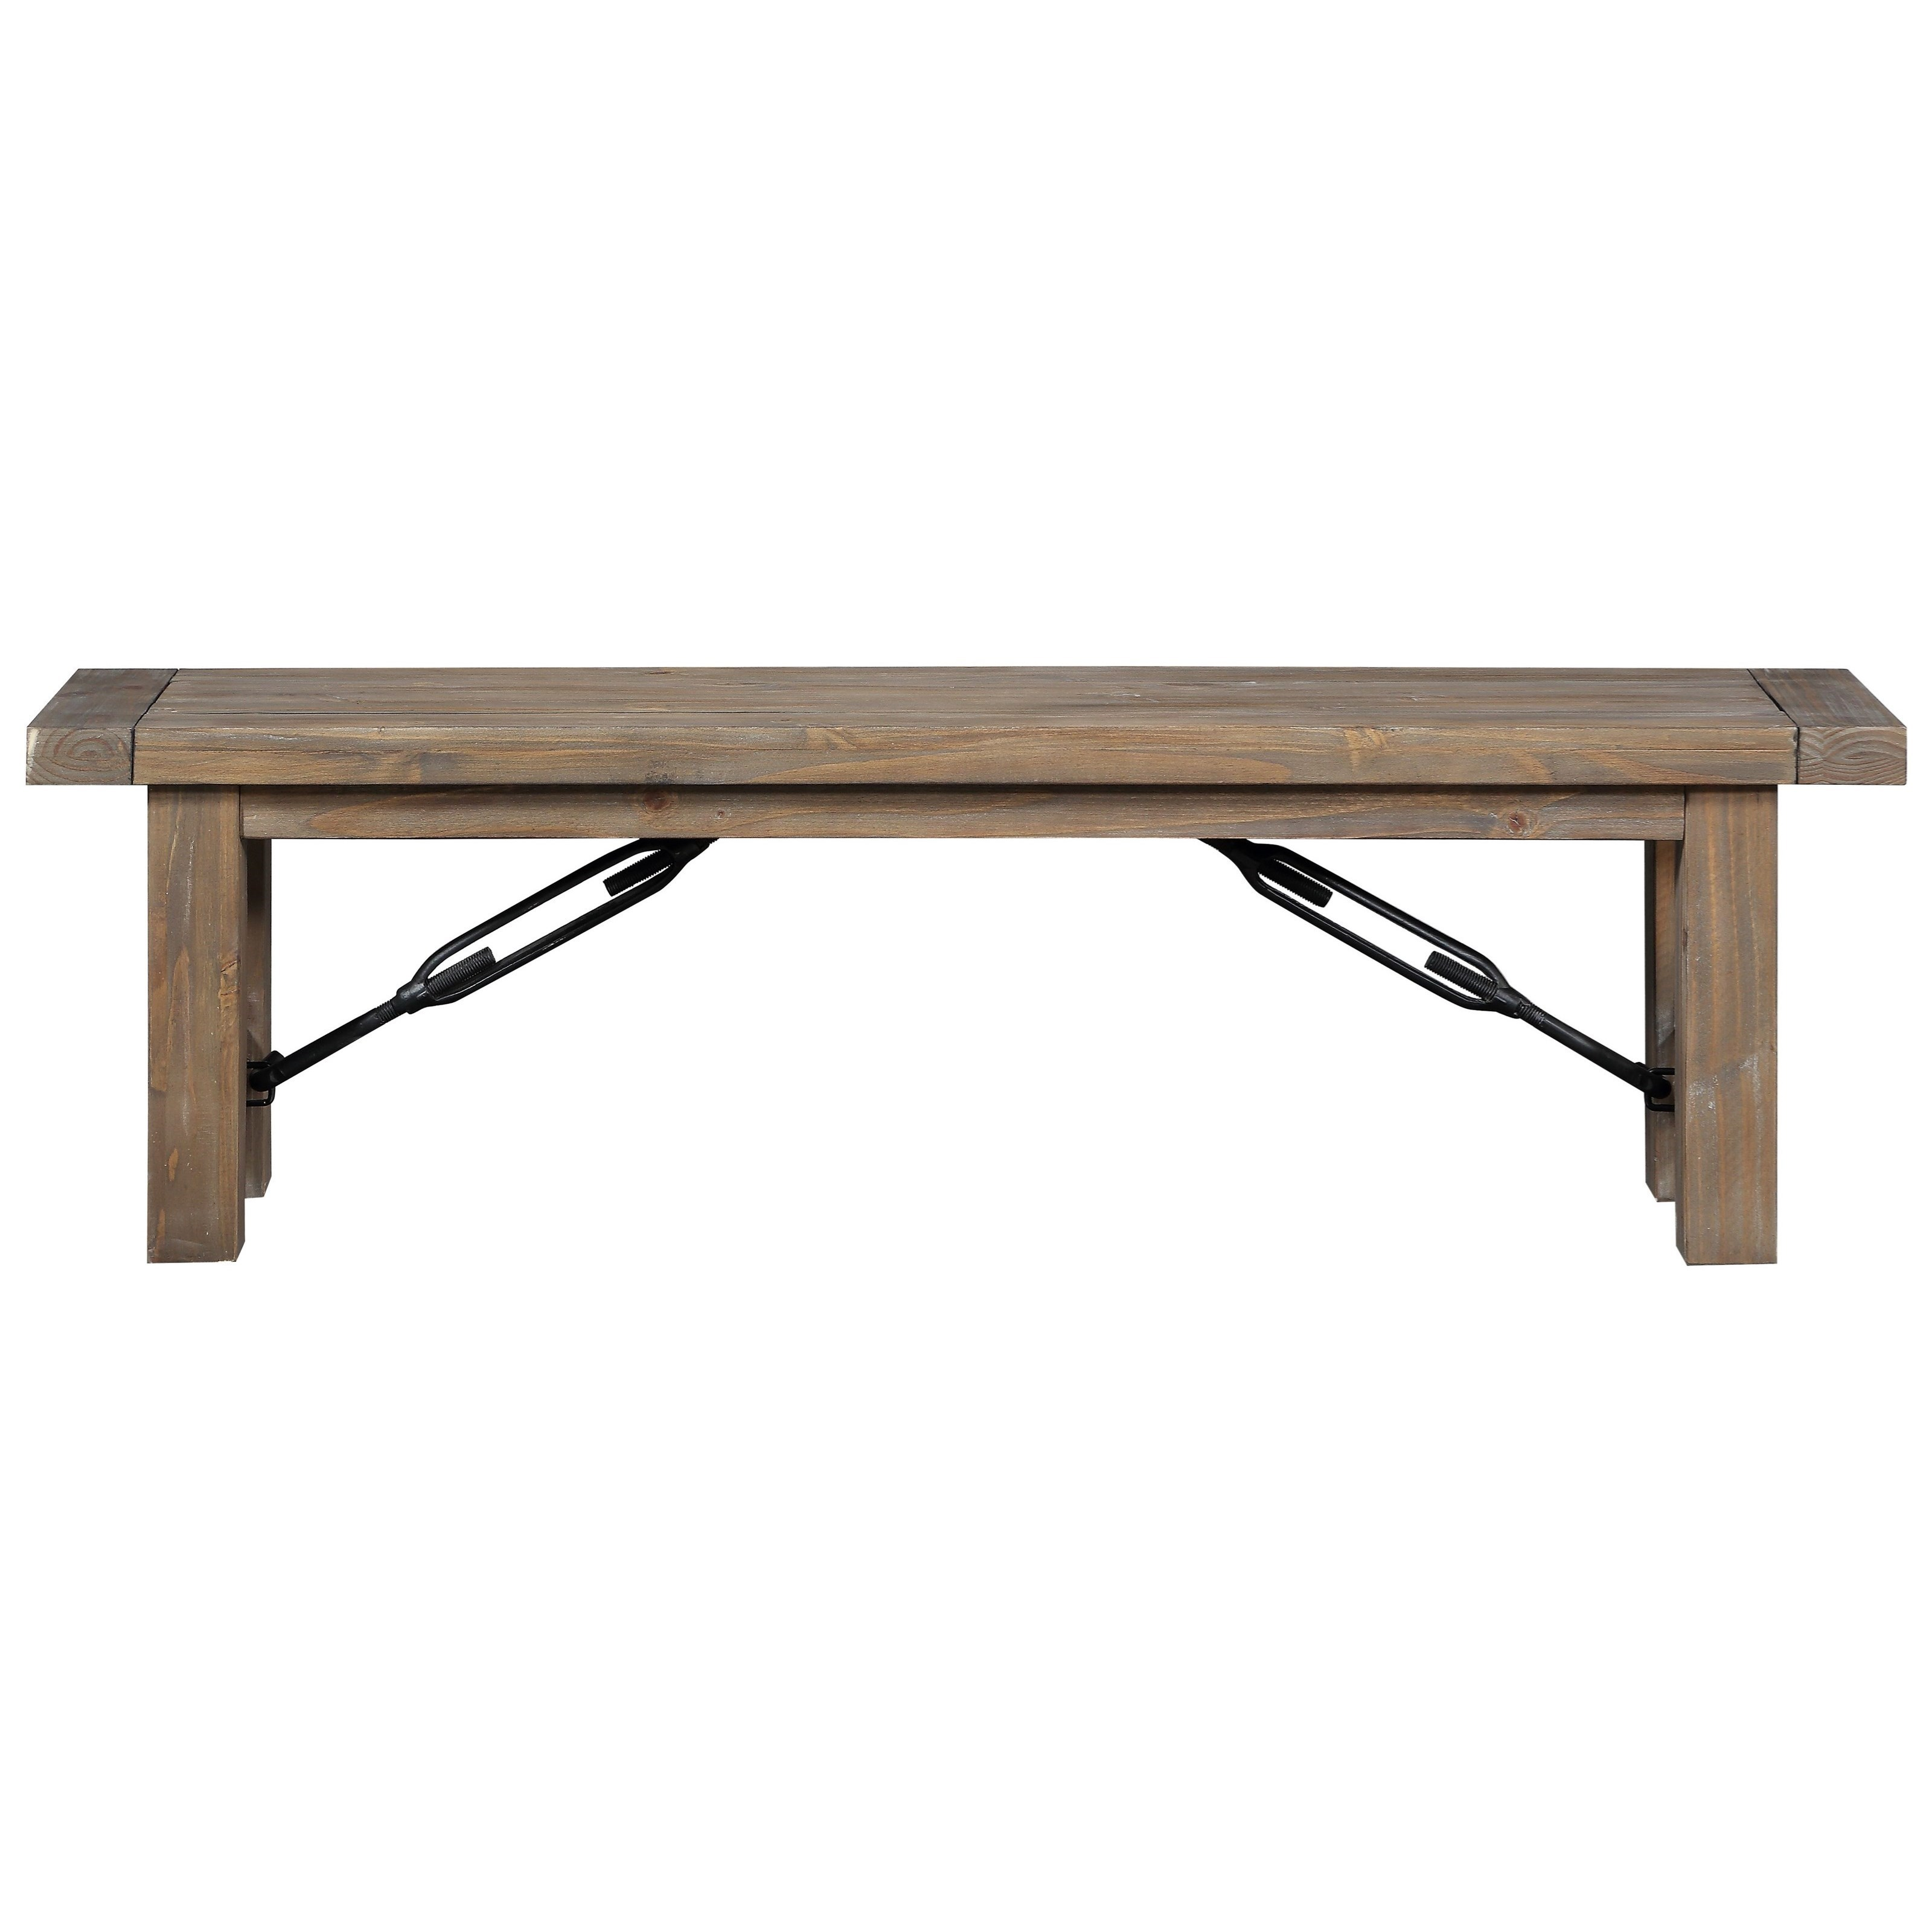 Rustic Solid Wood Bench with Industrial Braces